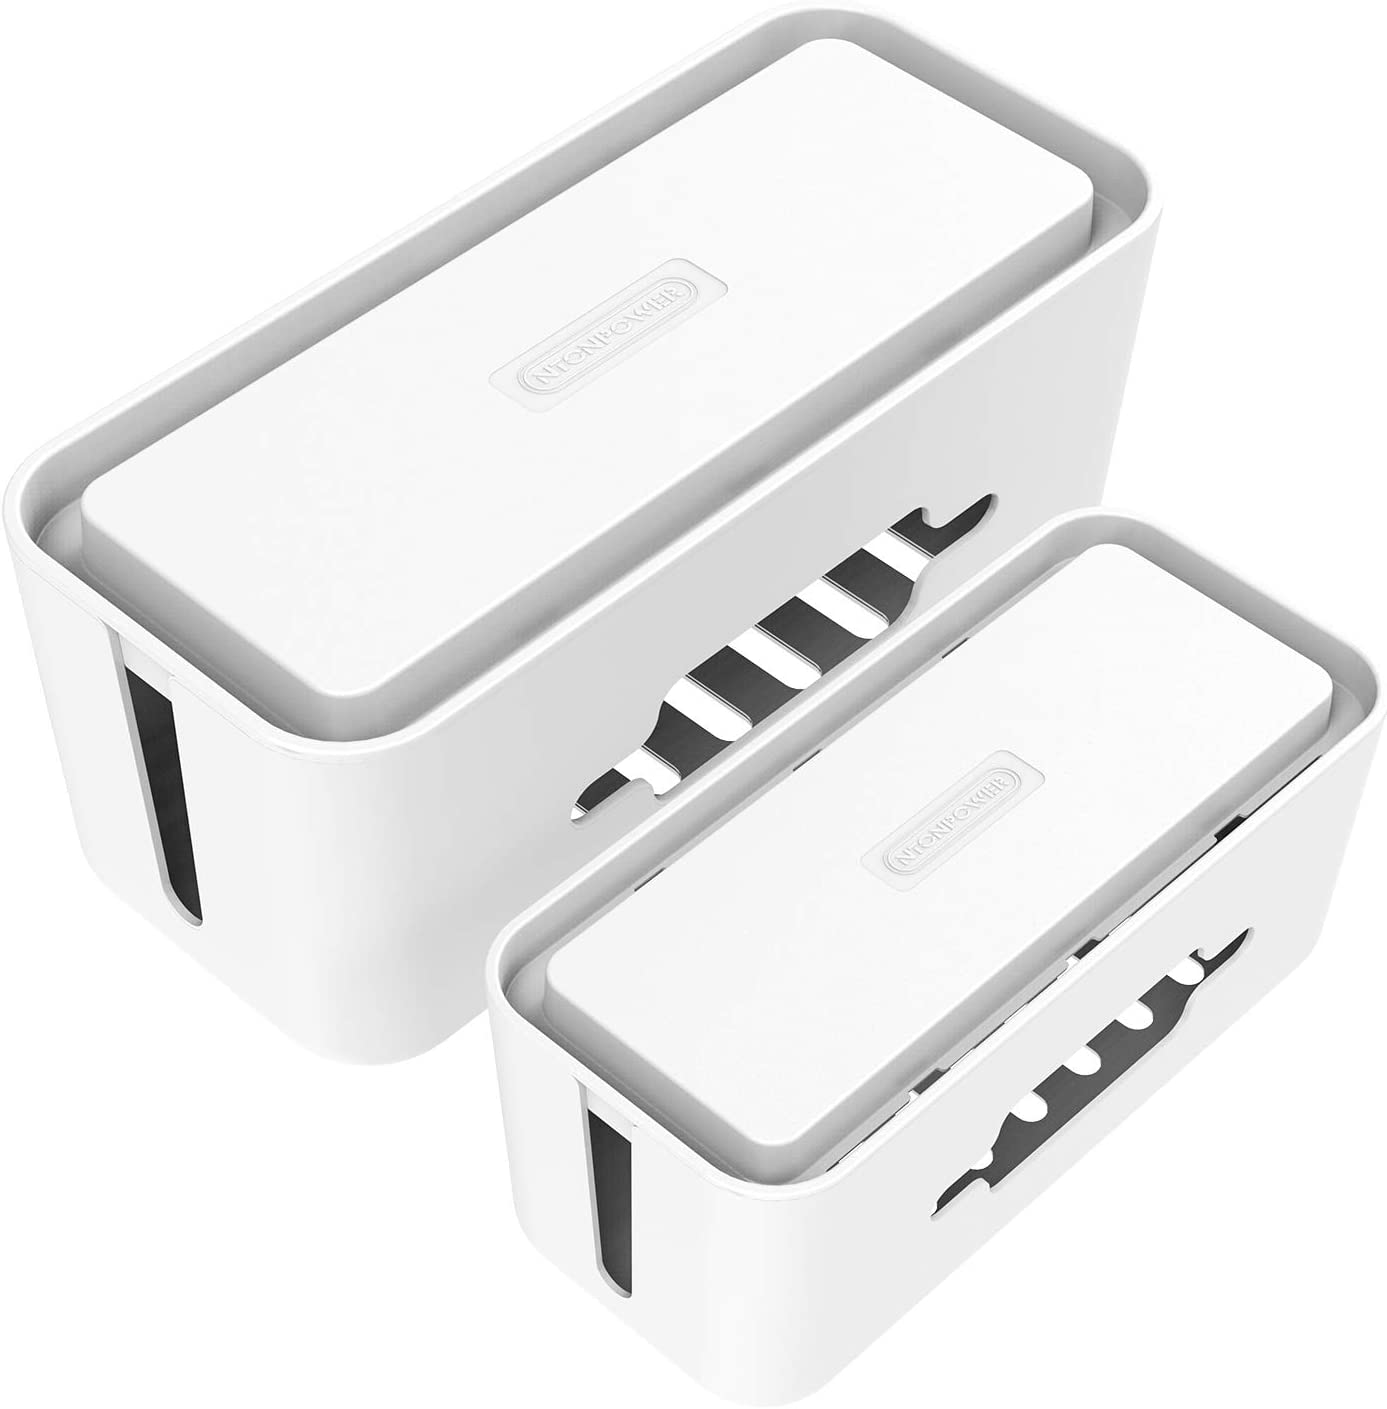 Cable Management Box - NTONPOWER Cord Organizer Box Set of 2, Surge Protector Cover with Phone Tablet Holder, Large & Extra Large Hide Cable Box for Home, Office, Entertainment Center, Floor - White